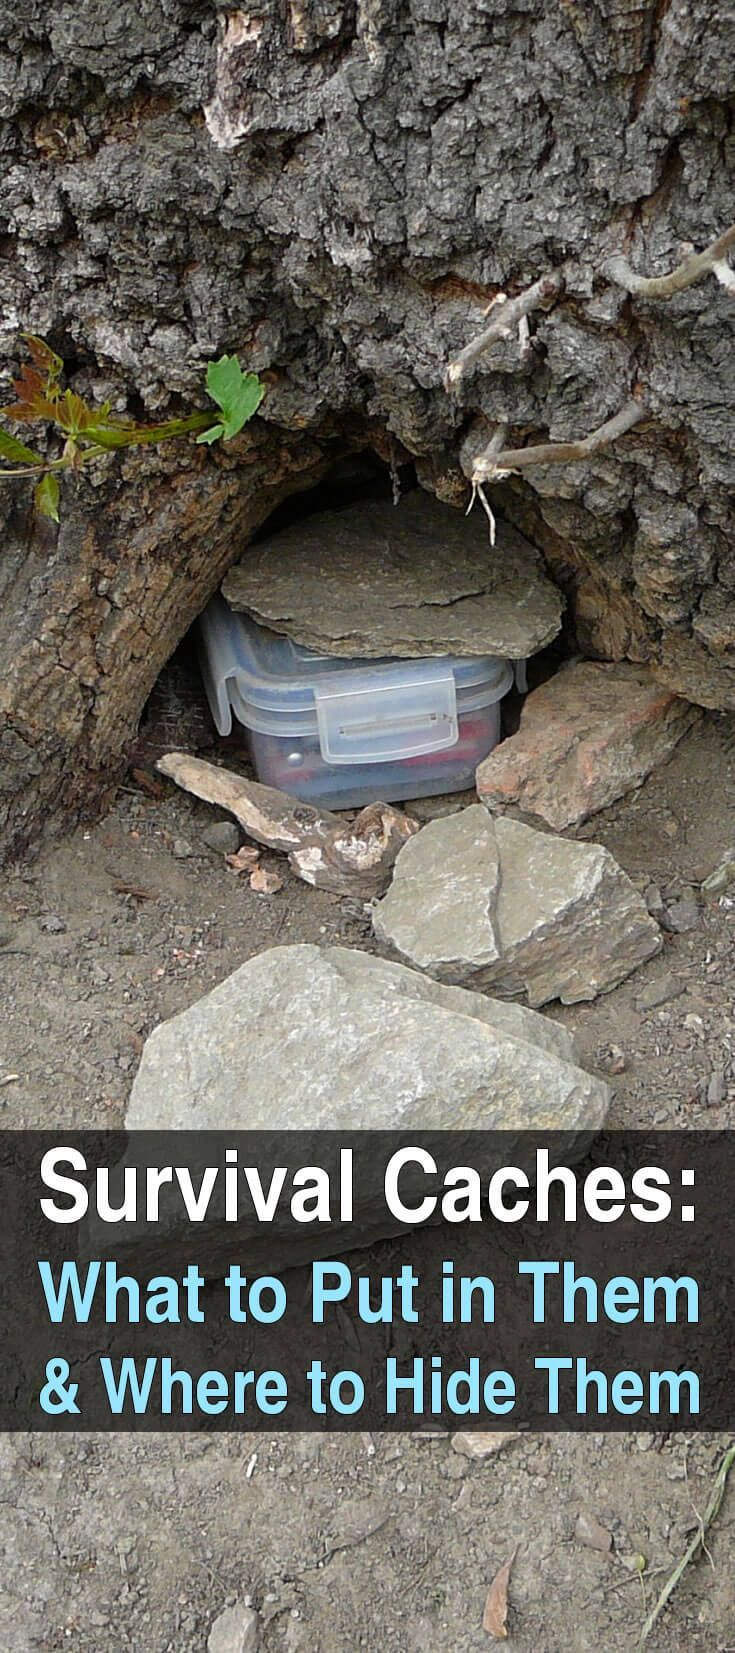 Survival Caches: What to Put in Them and Where to Hide Them.The contents of your survival cache will vary depending on your location and specific needs,